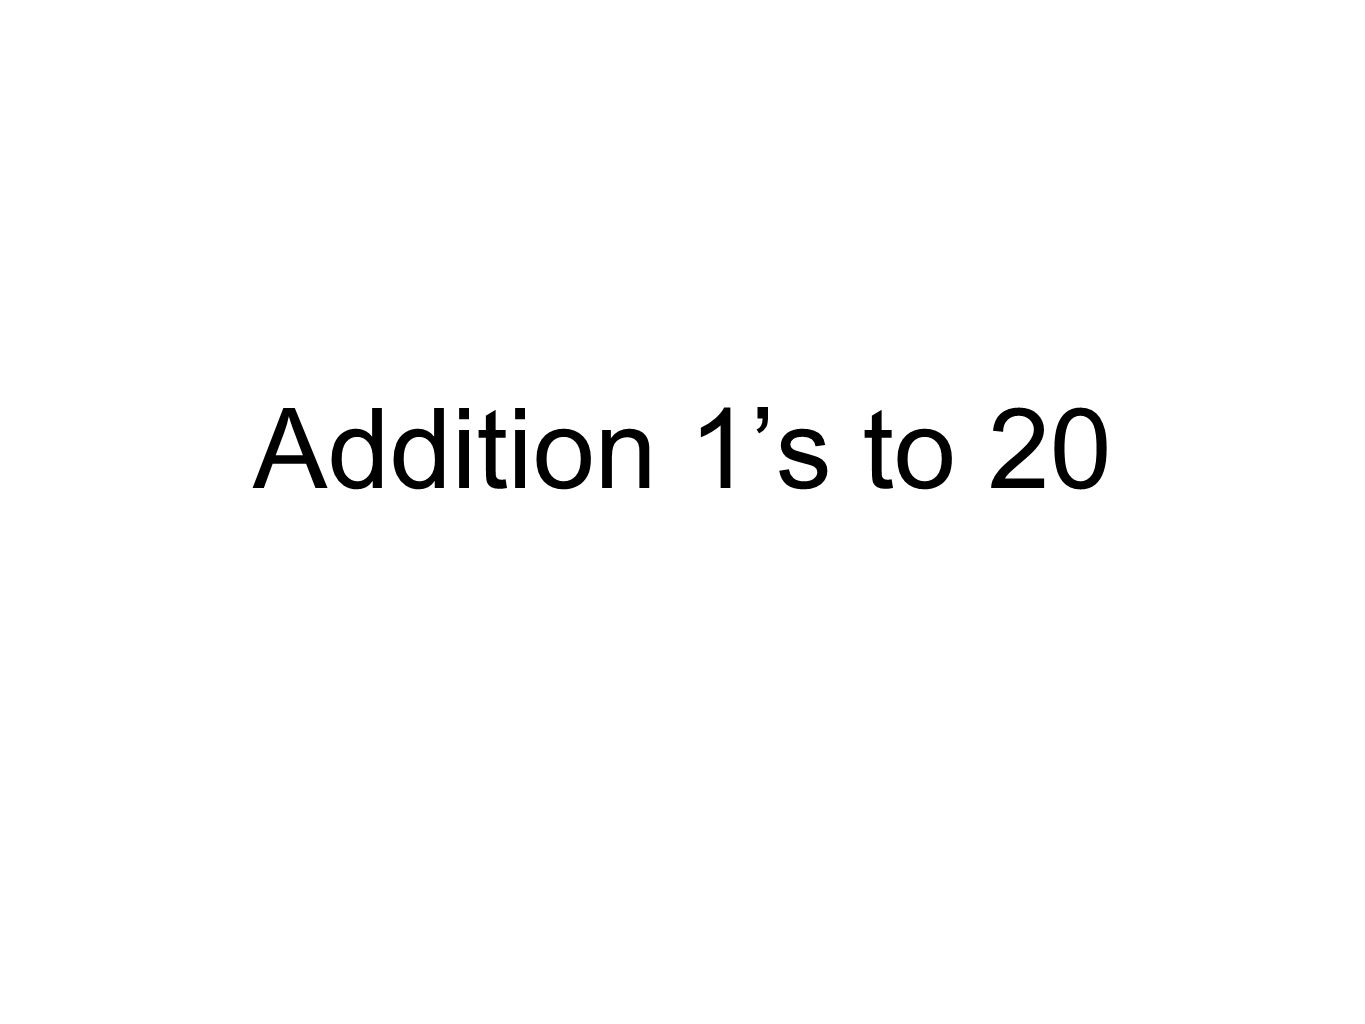 Addition 4's to 20